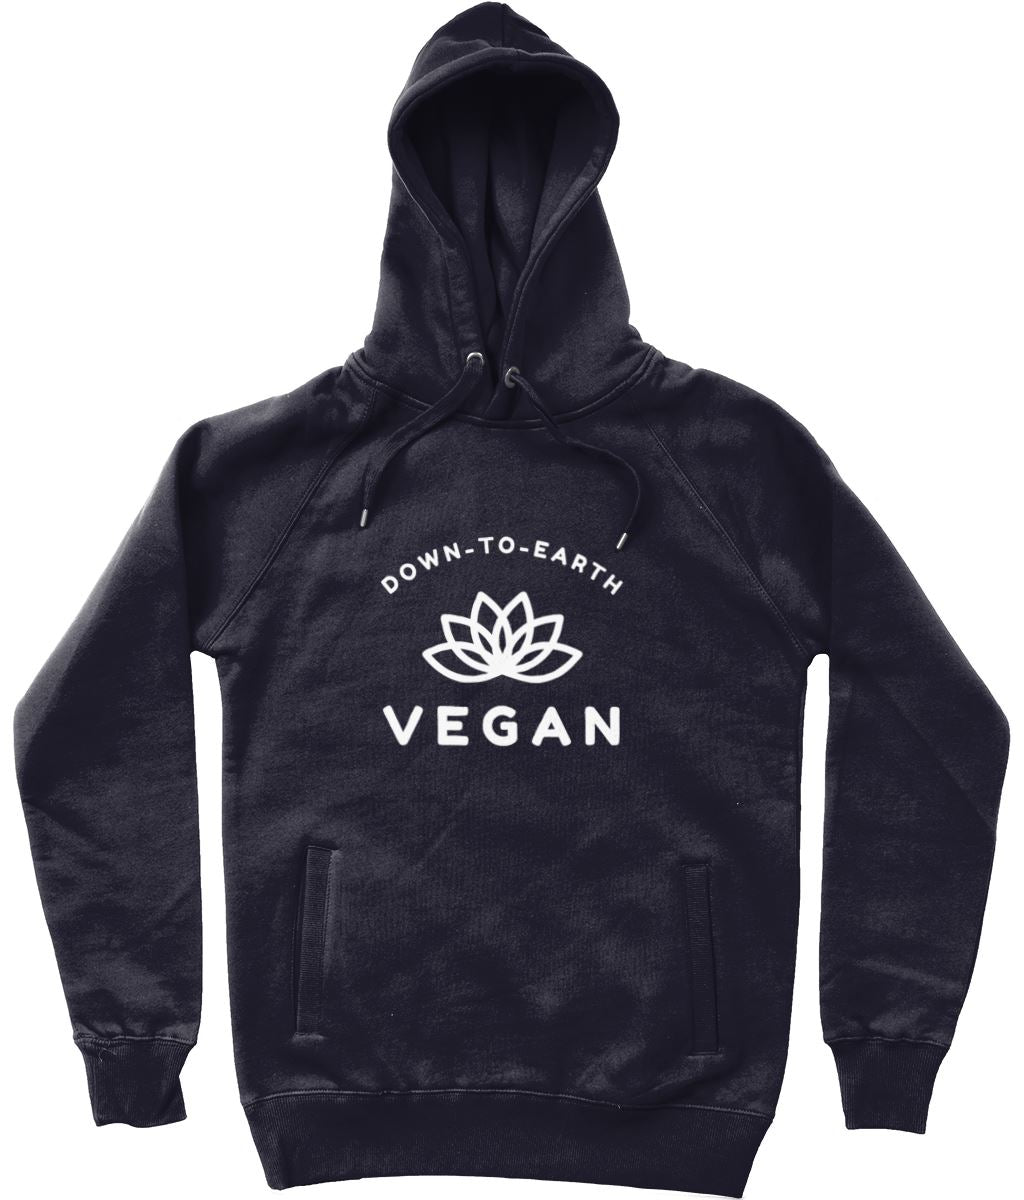 """Down-To-Earth Vegan"" Those Vegan Guys Hoodie (Unisex) Clothing Vegan Original Navy X-Small"